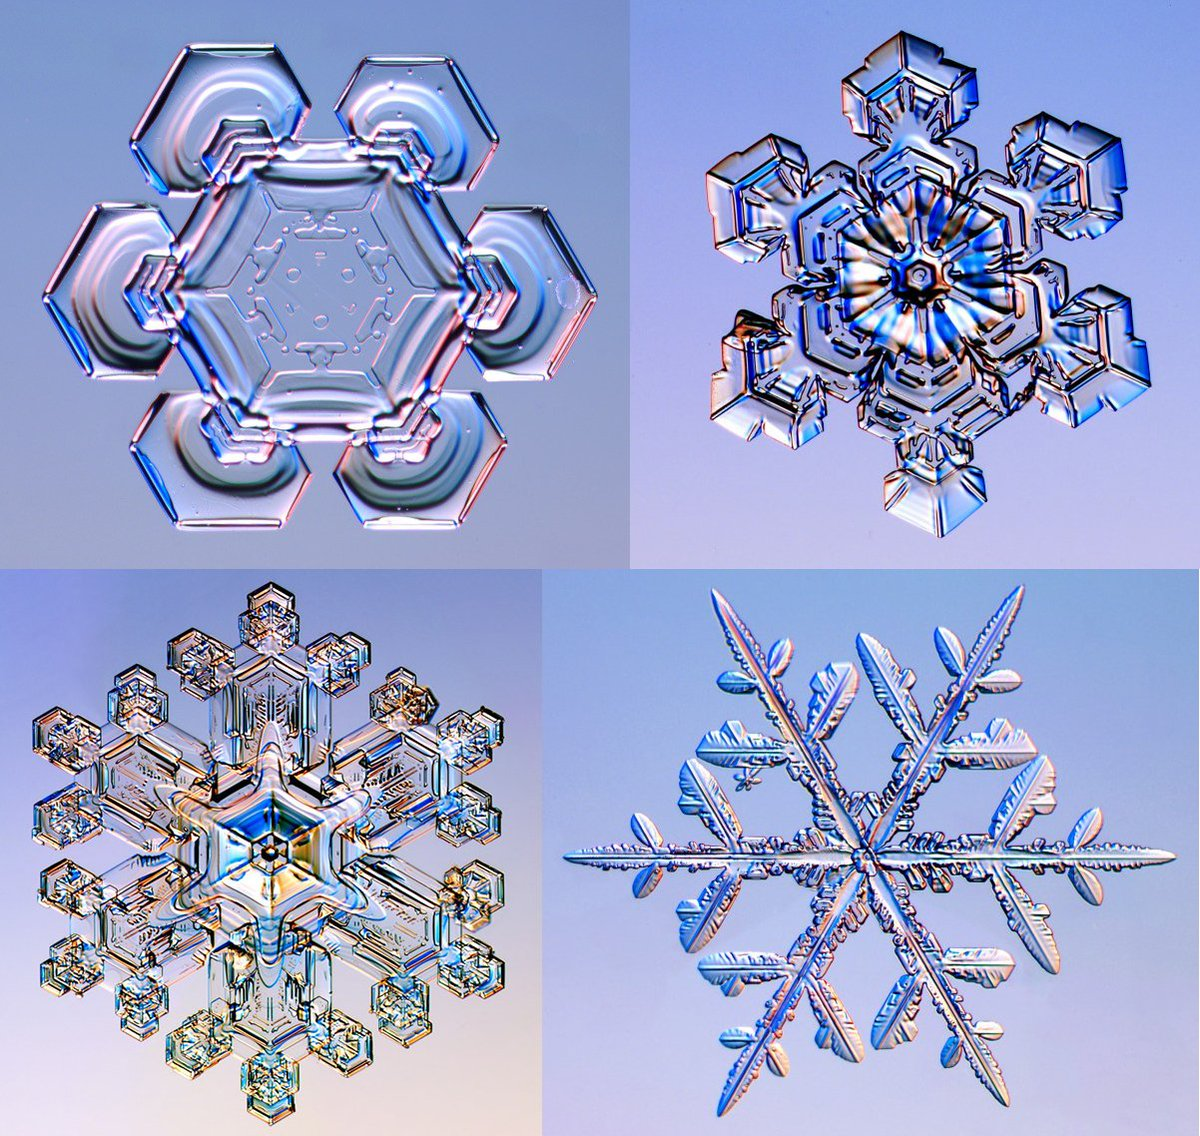 Snowflakes Under A Microscope Via Reddit